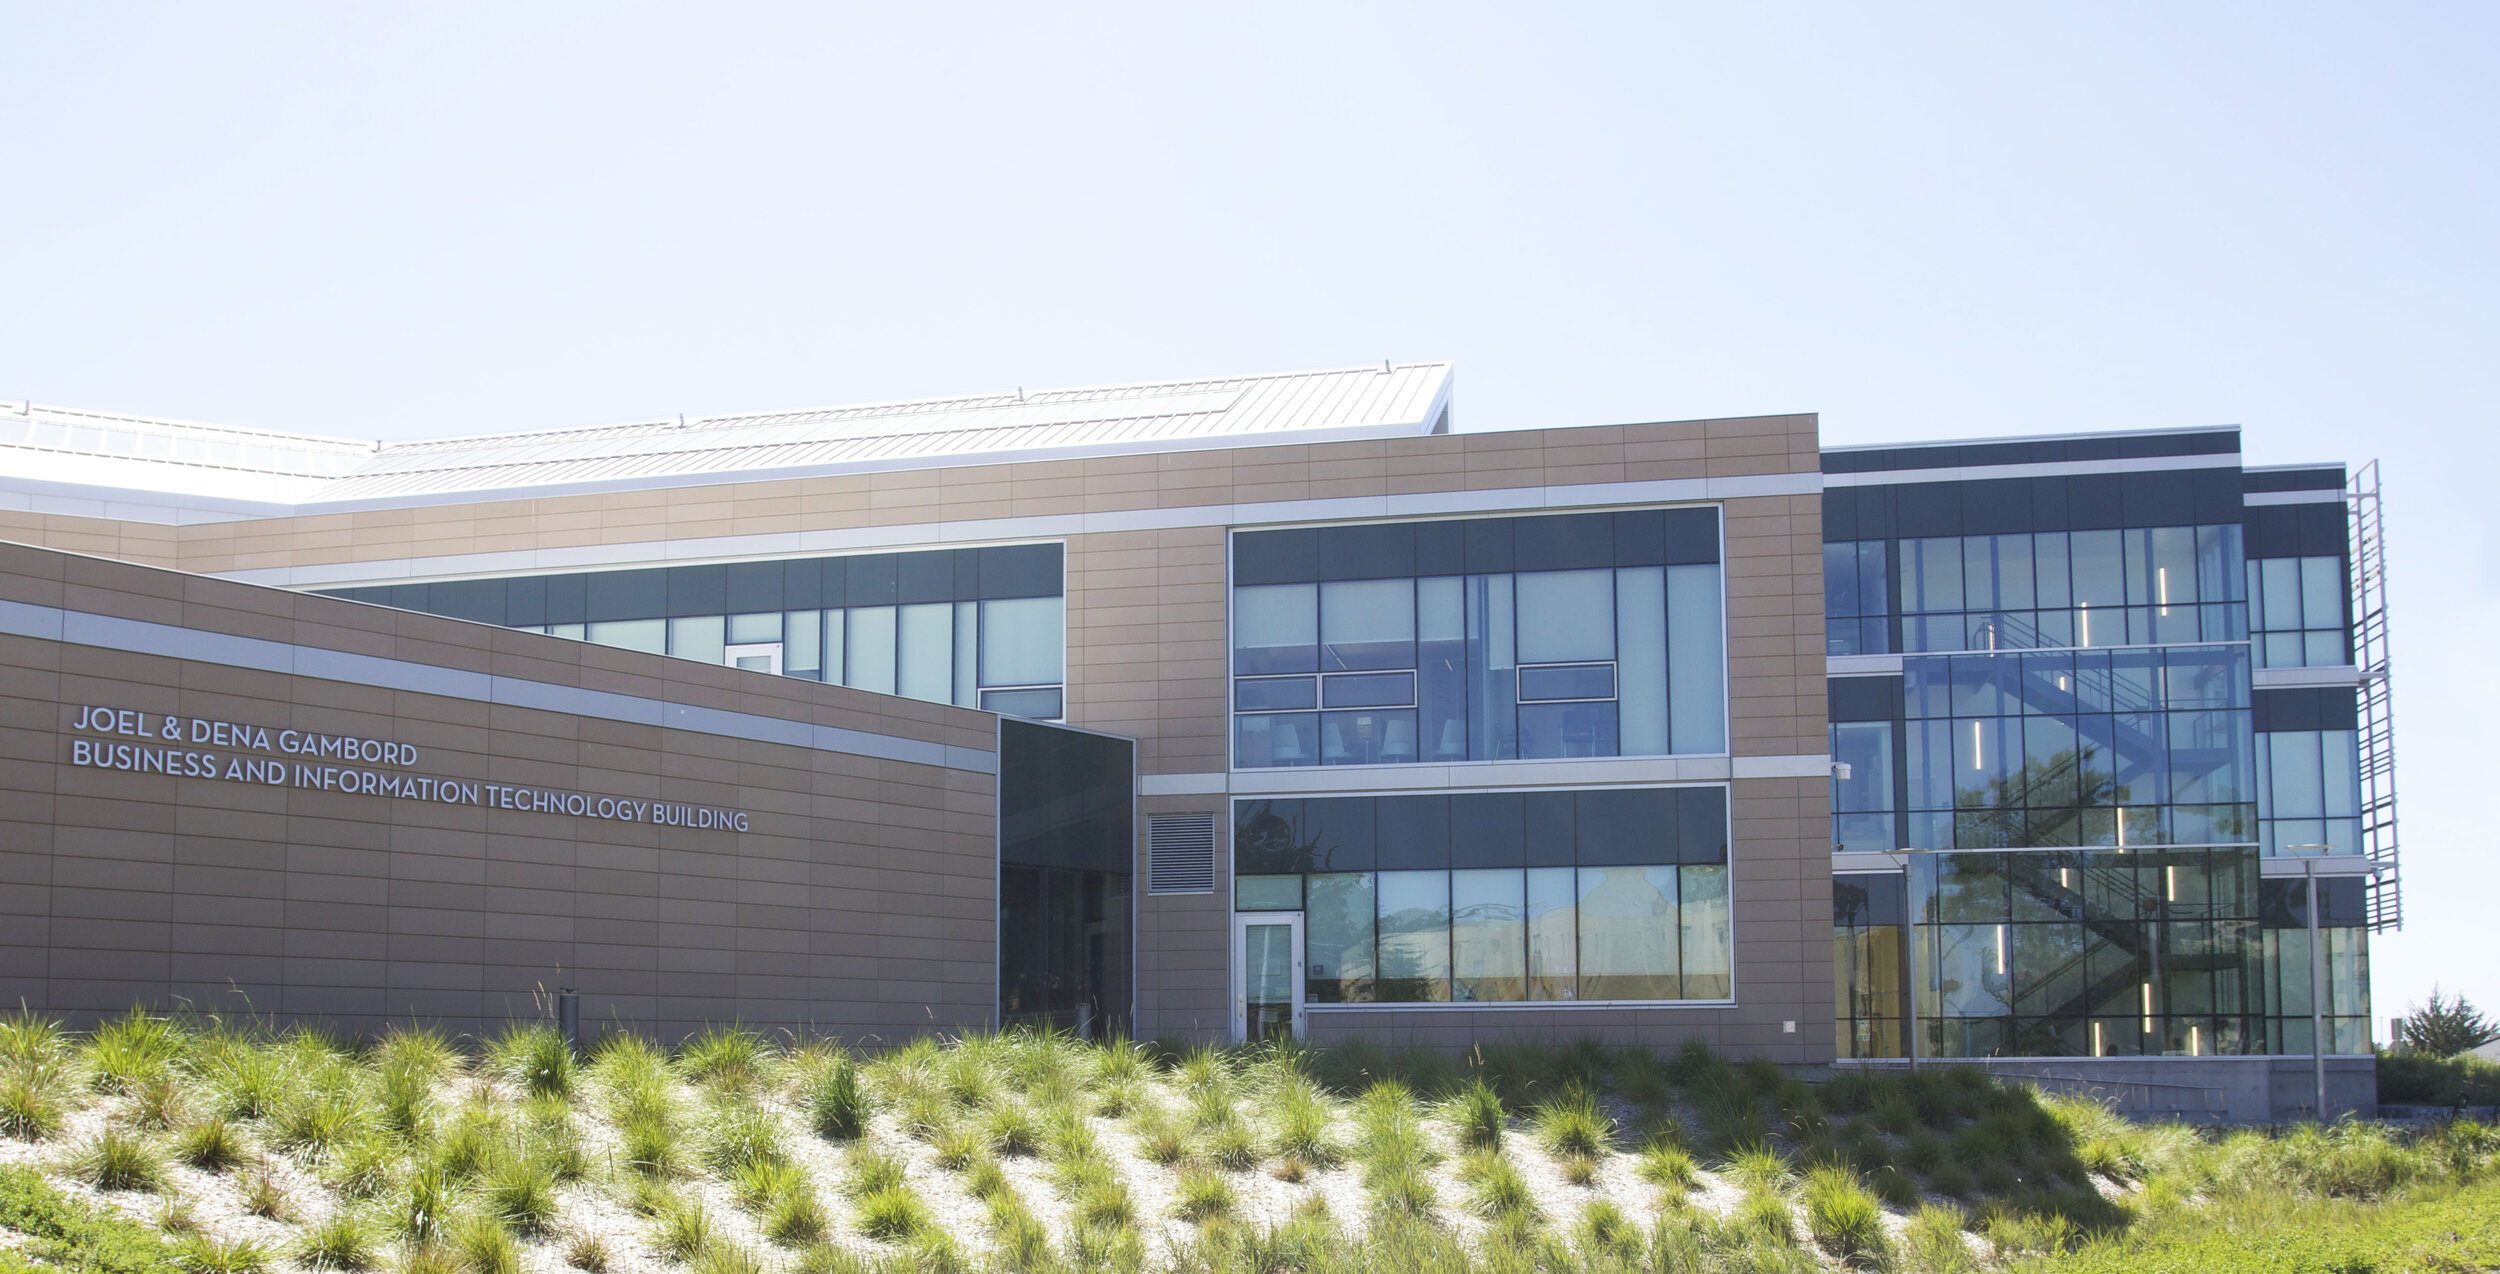 The Joel and Dena Gambord Business and Information Technology Building at Cal State Monterey Bay